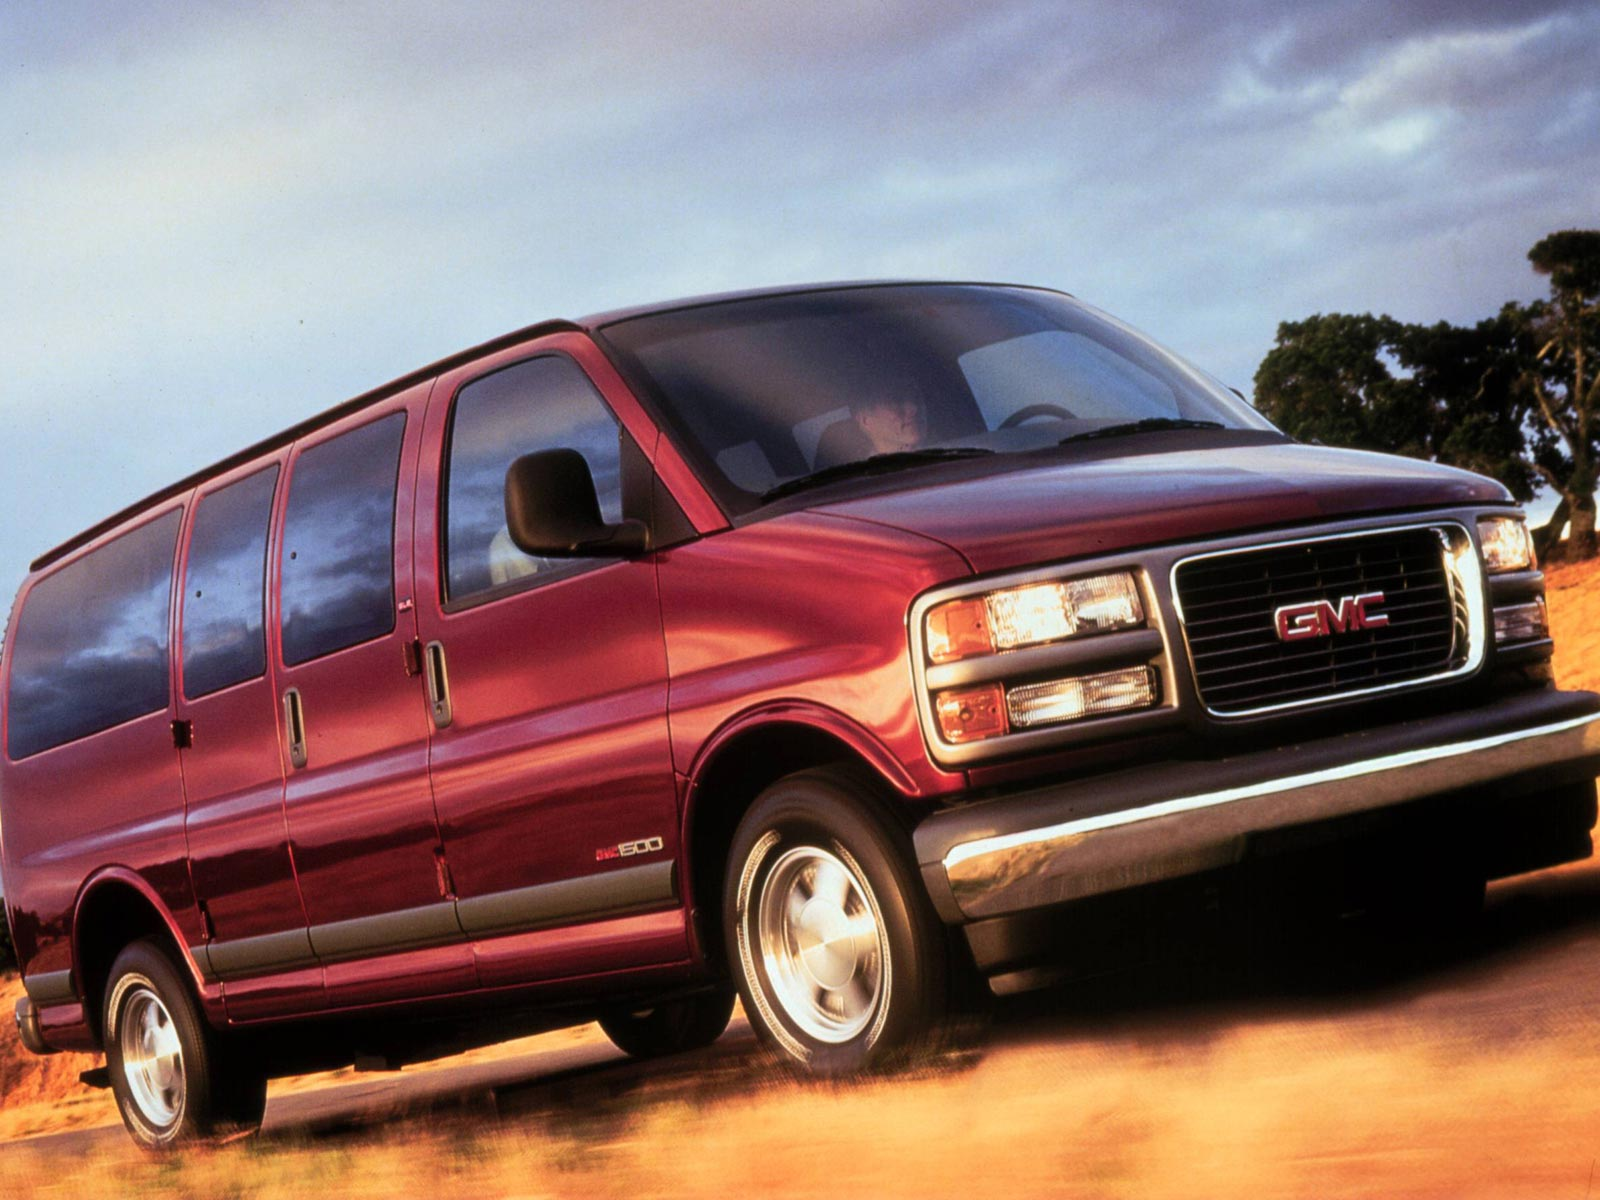 2000 GMC Savana (c) GMC